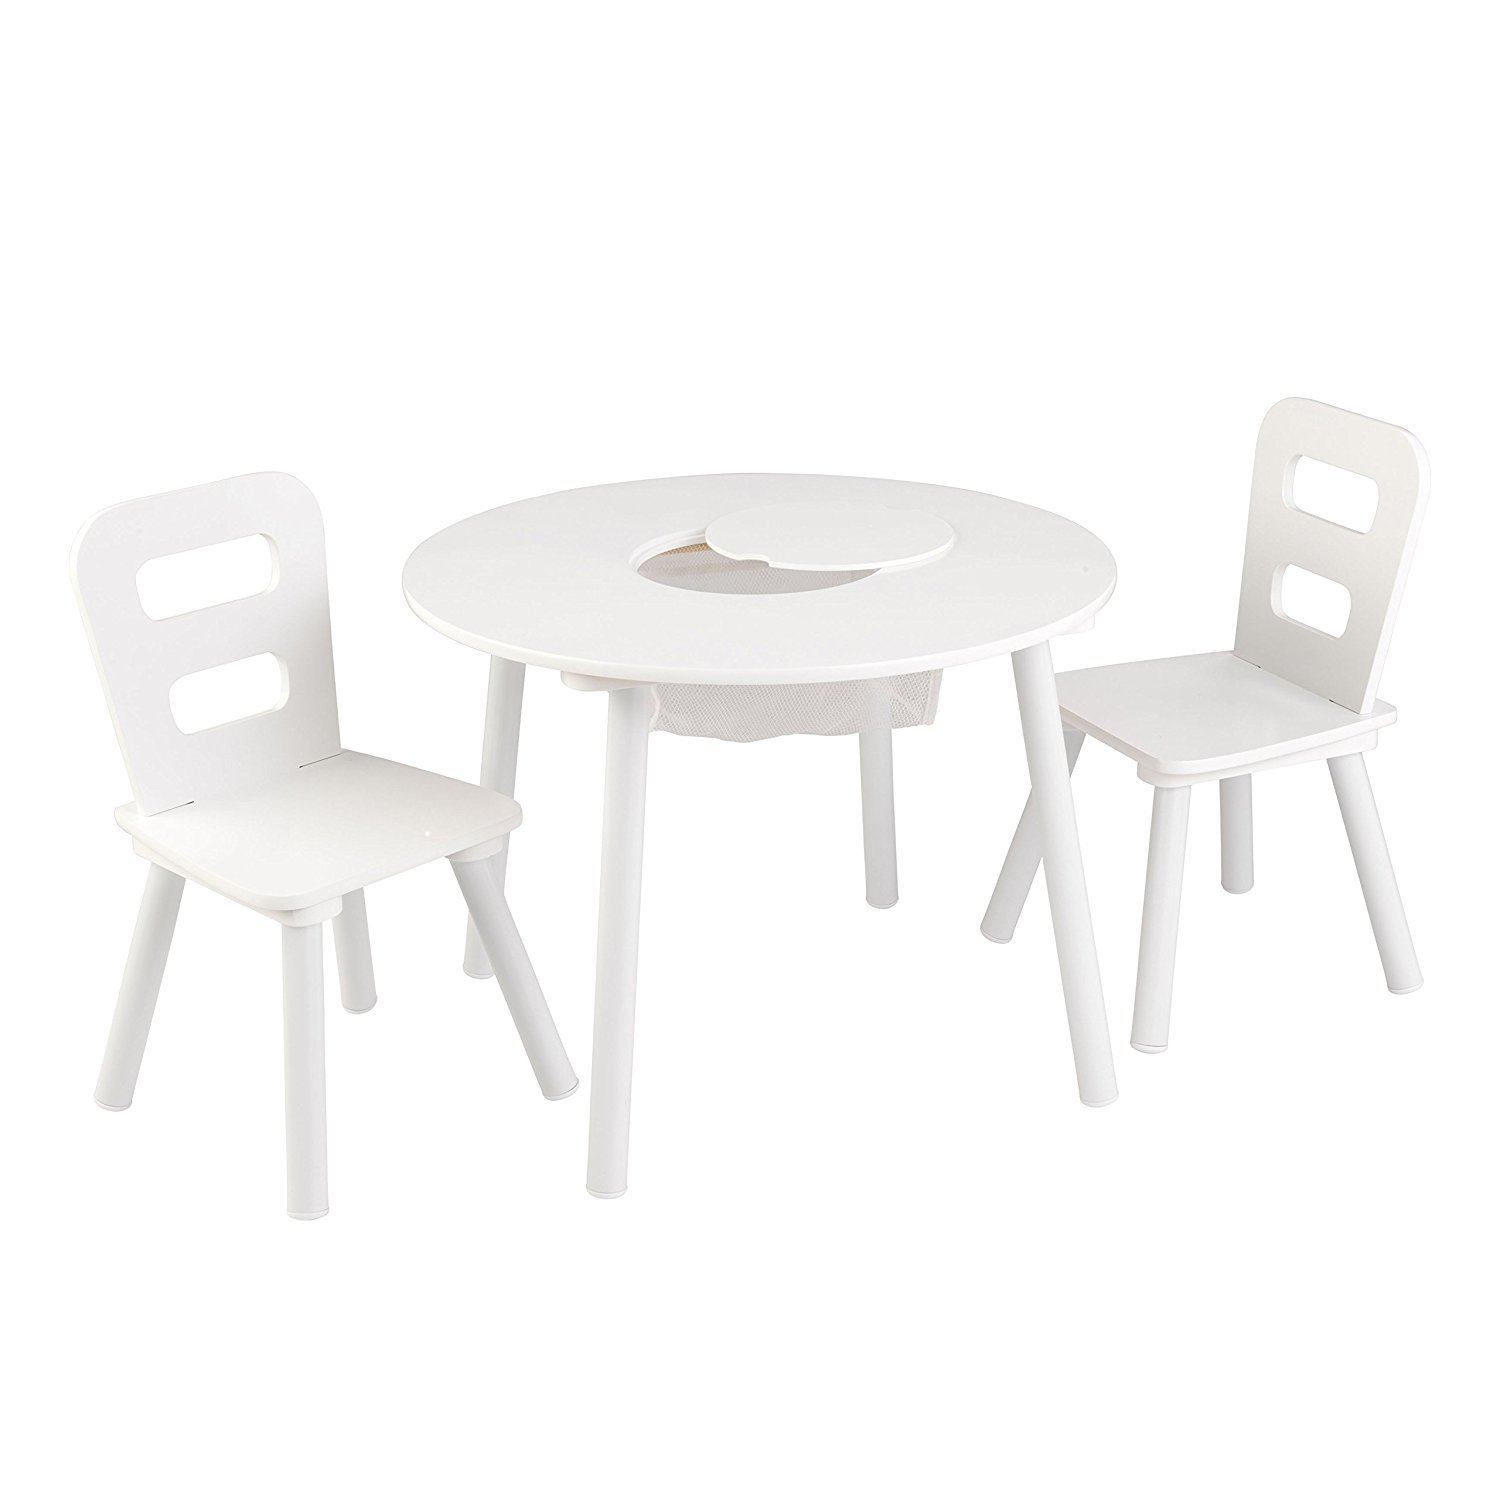 Amazon KidKraft Kids Round Table and 2 Chairs Set White